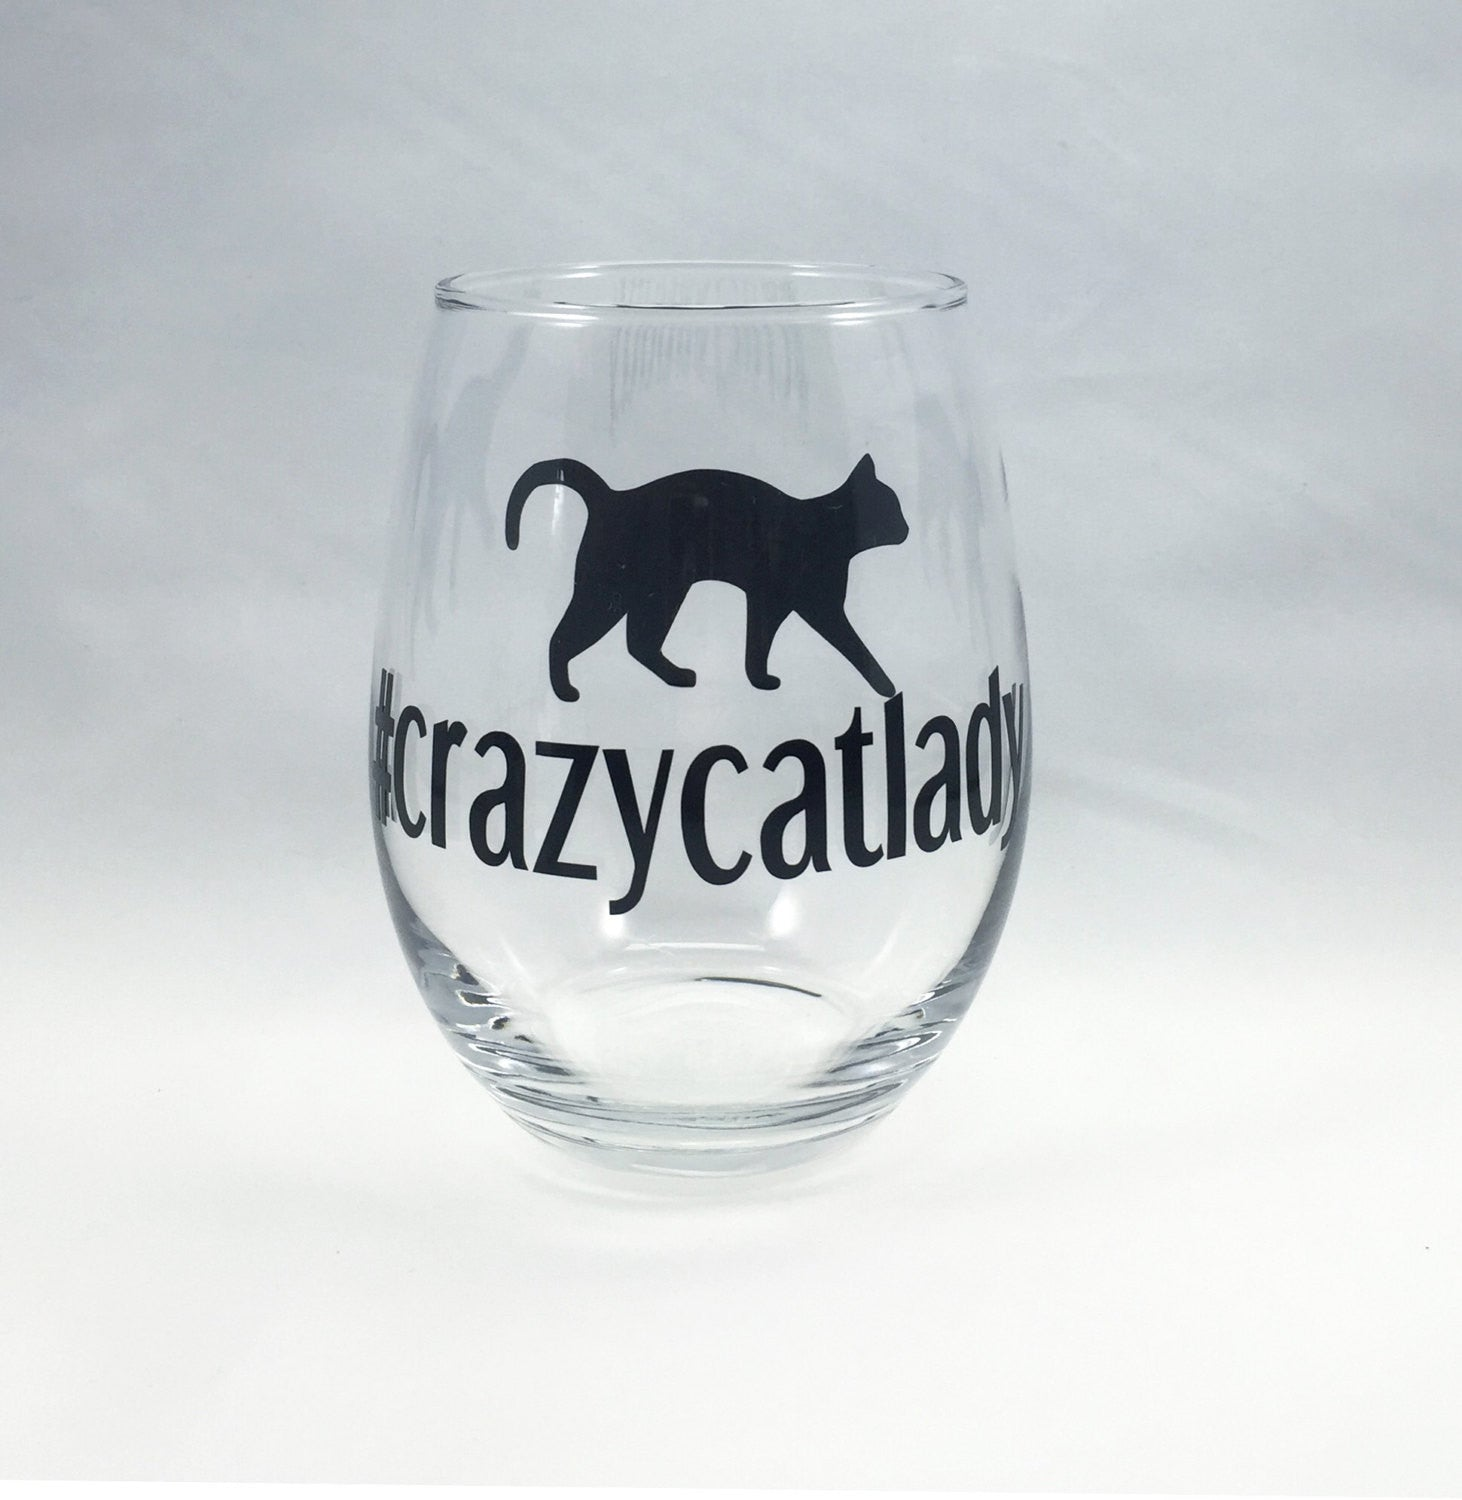 hashtag crazy cat lady wine glass